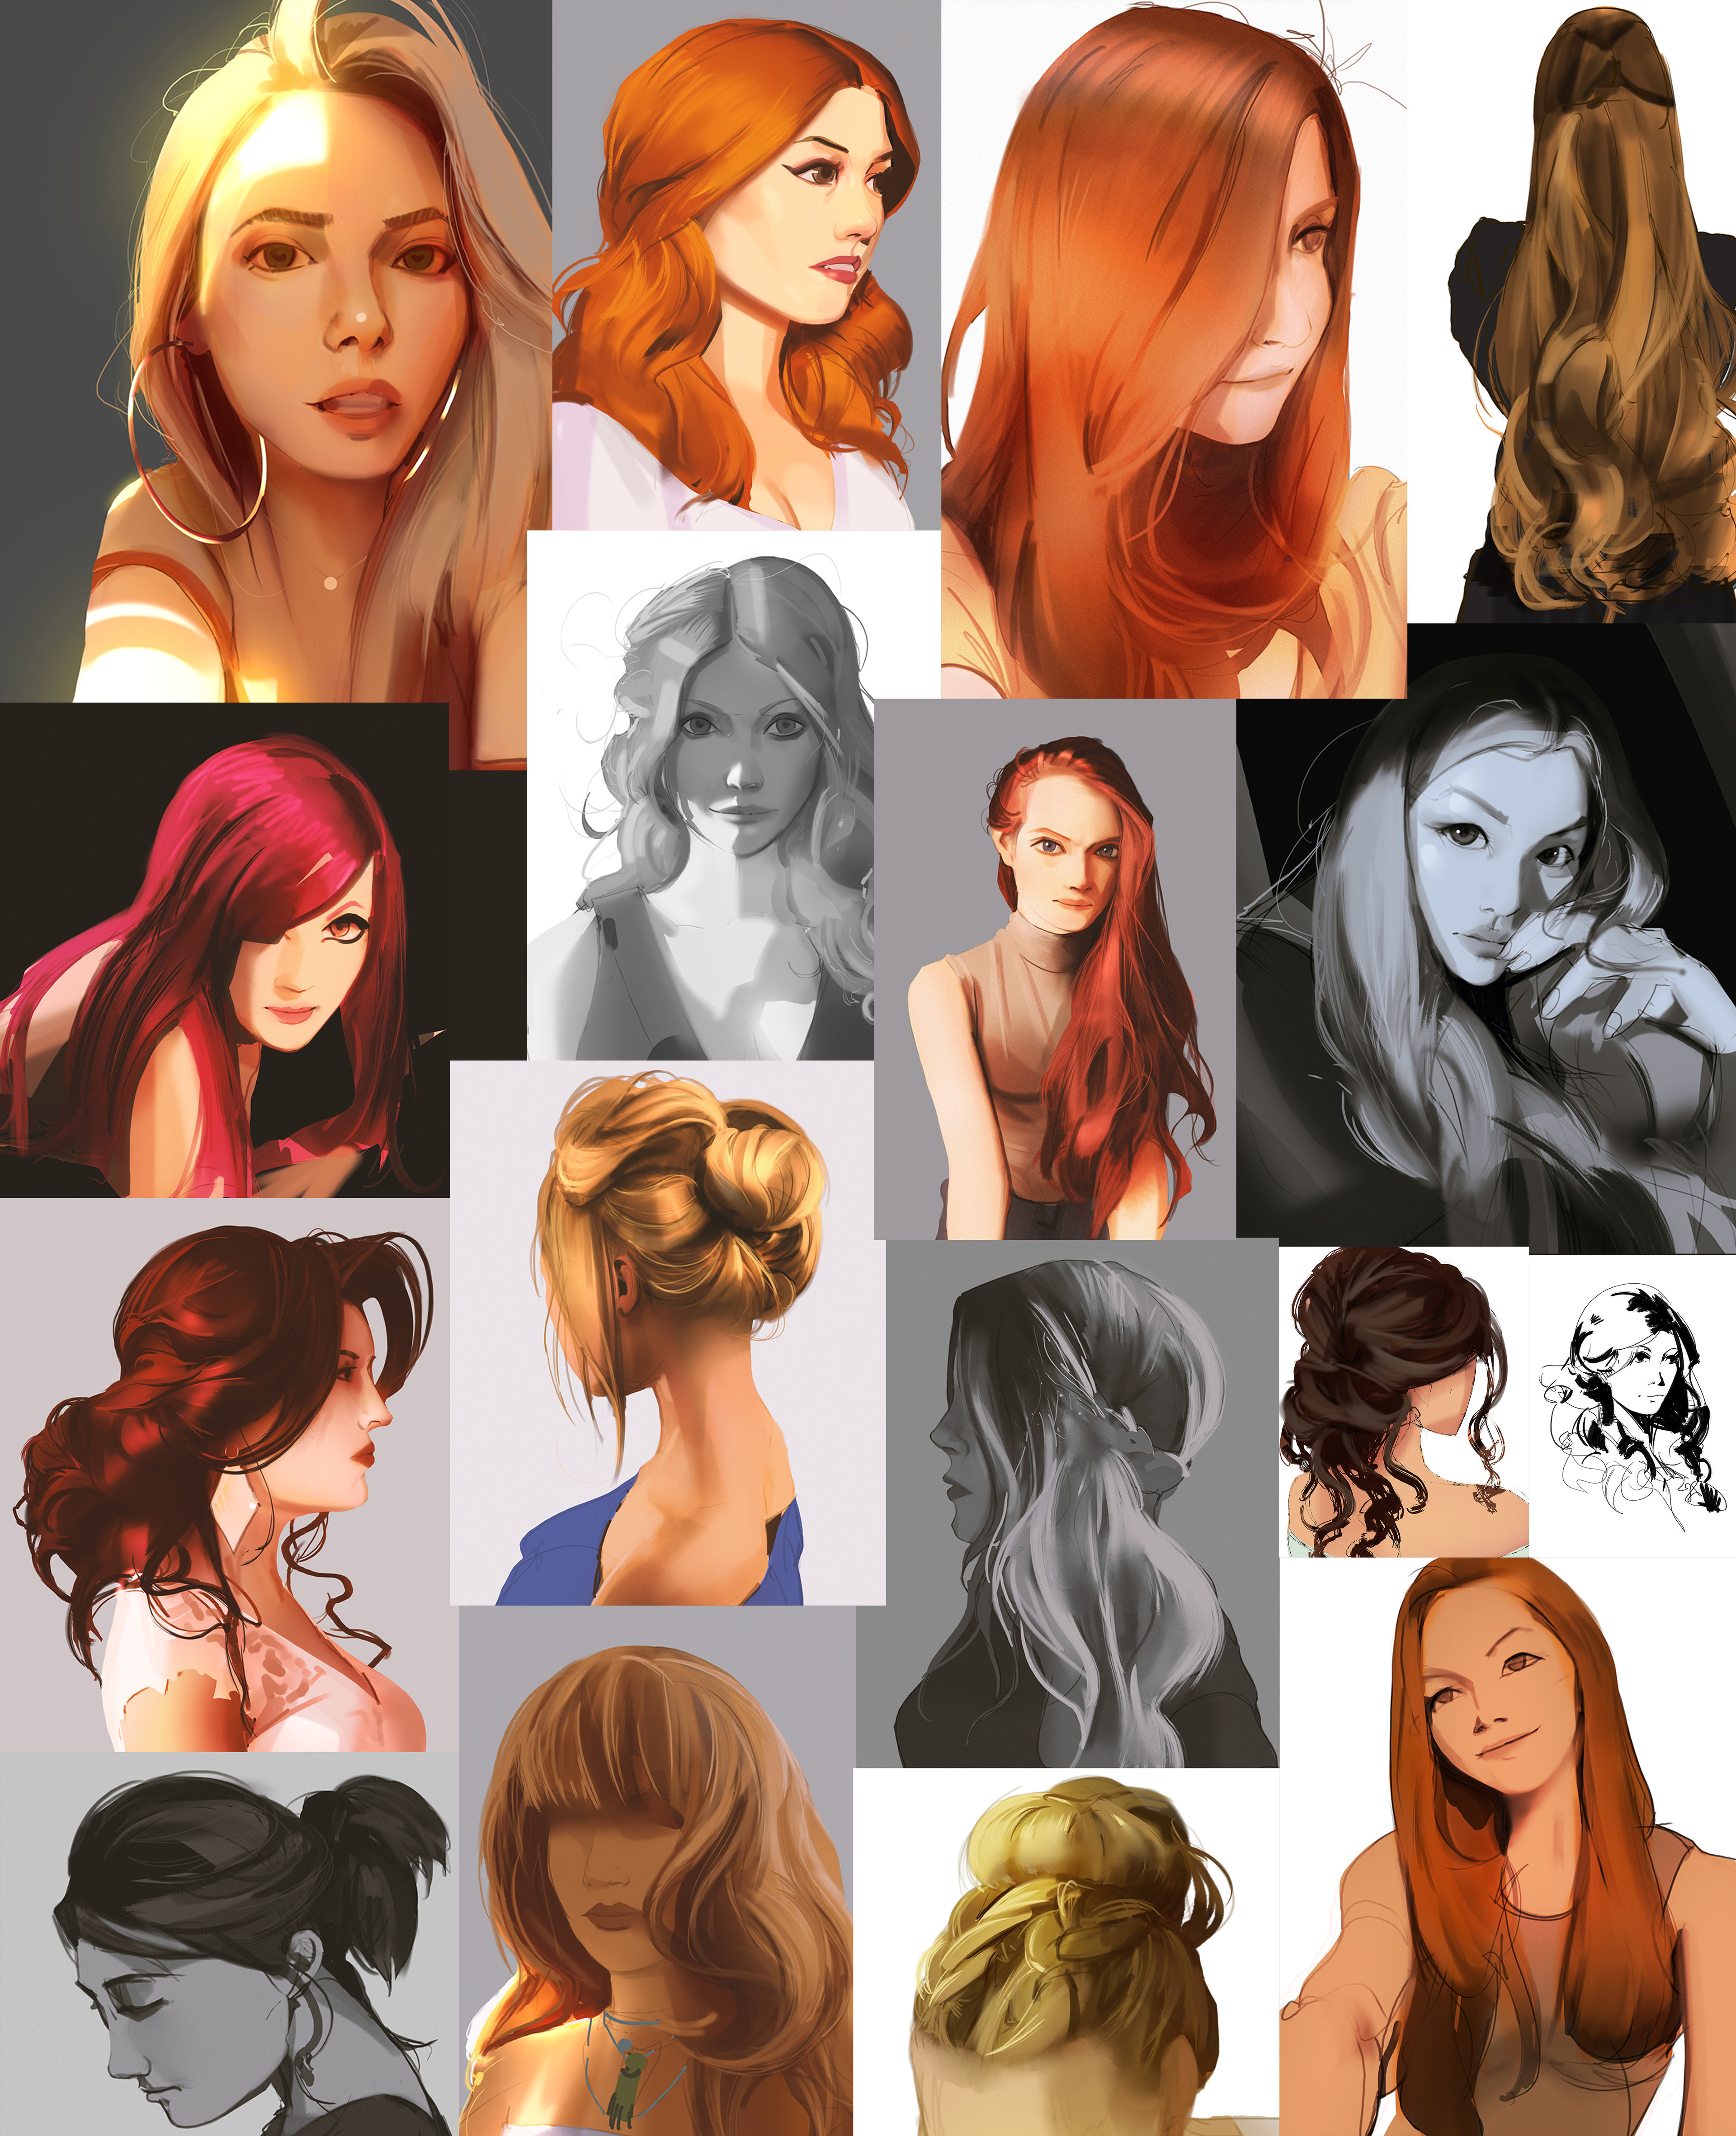 Studies i did along the way while working on the splash, wanted to focus on hair and face